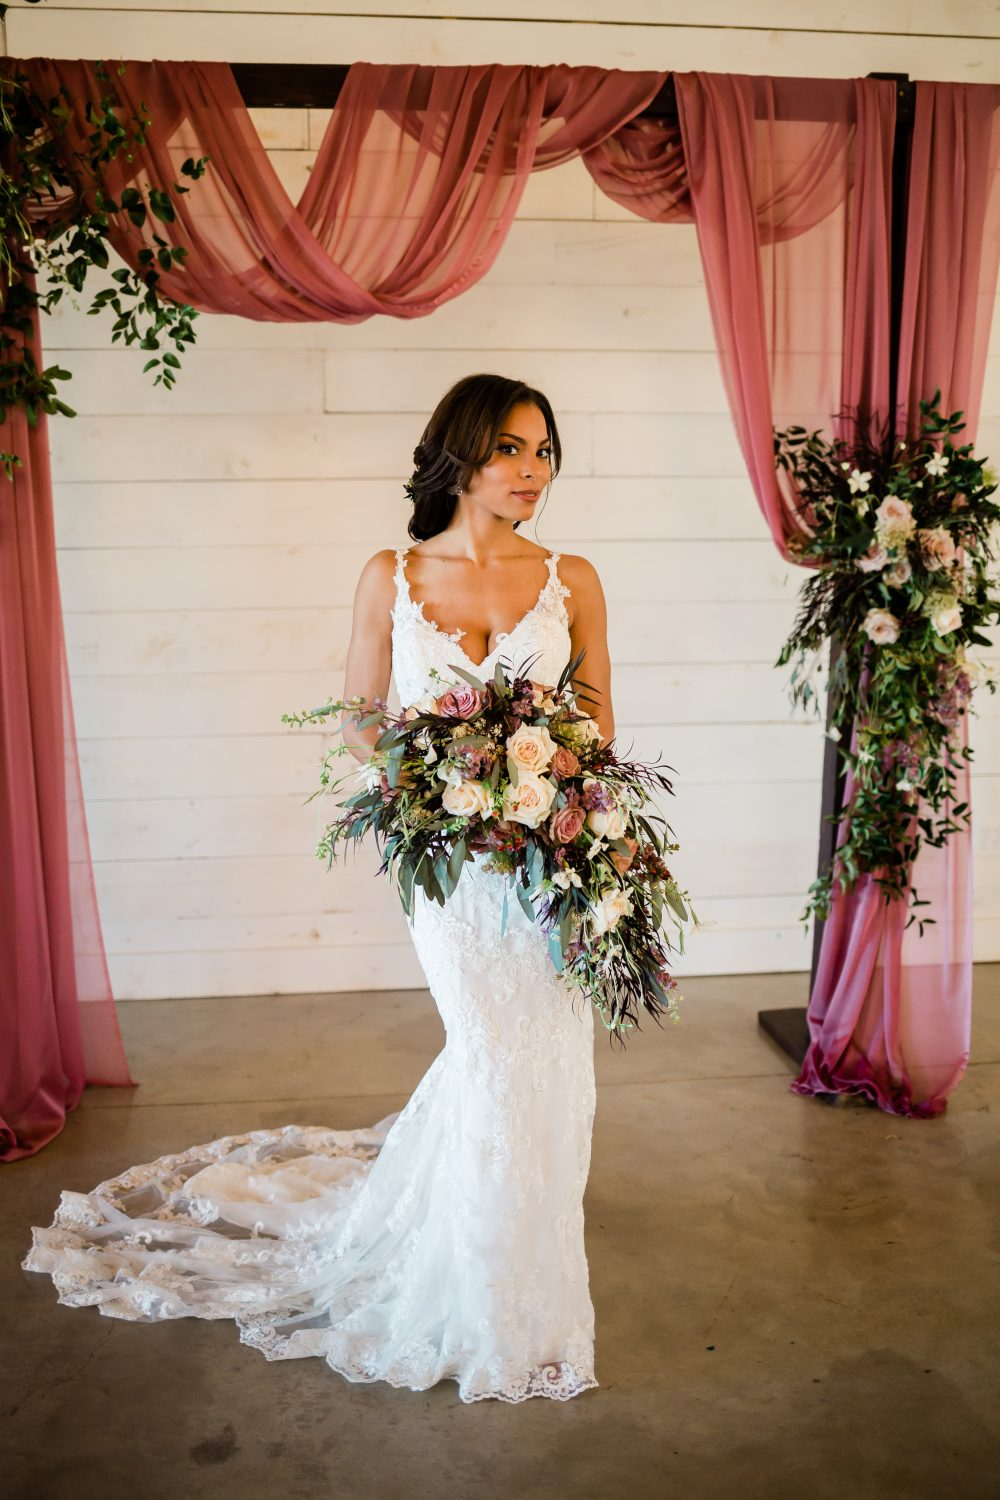 Wild Rose Events Dallas Wedding Florist at Dallas Wedding Venue Under the Wildwood by Drawing with Light Photography, boho wedding bouquet and wedding arch